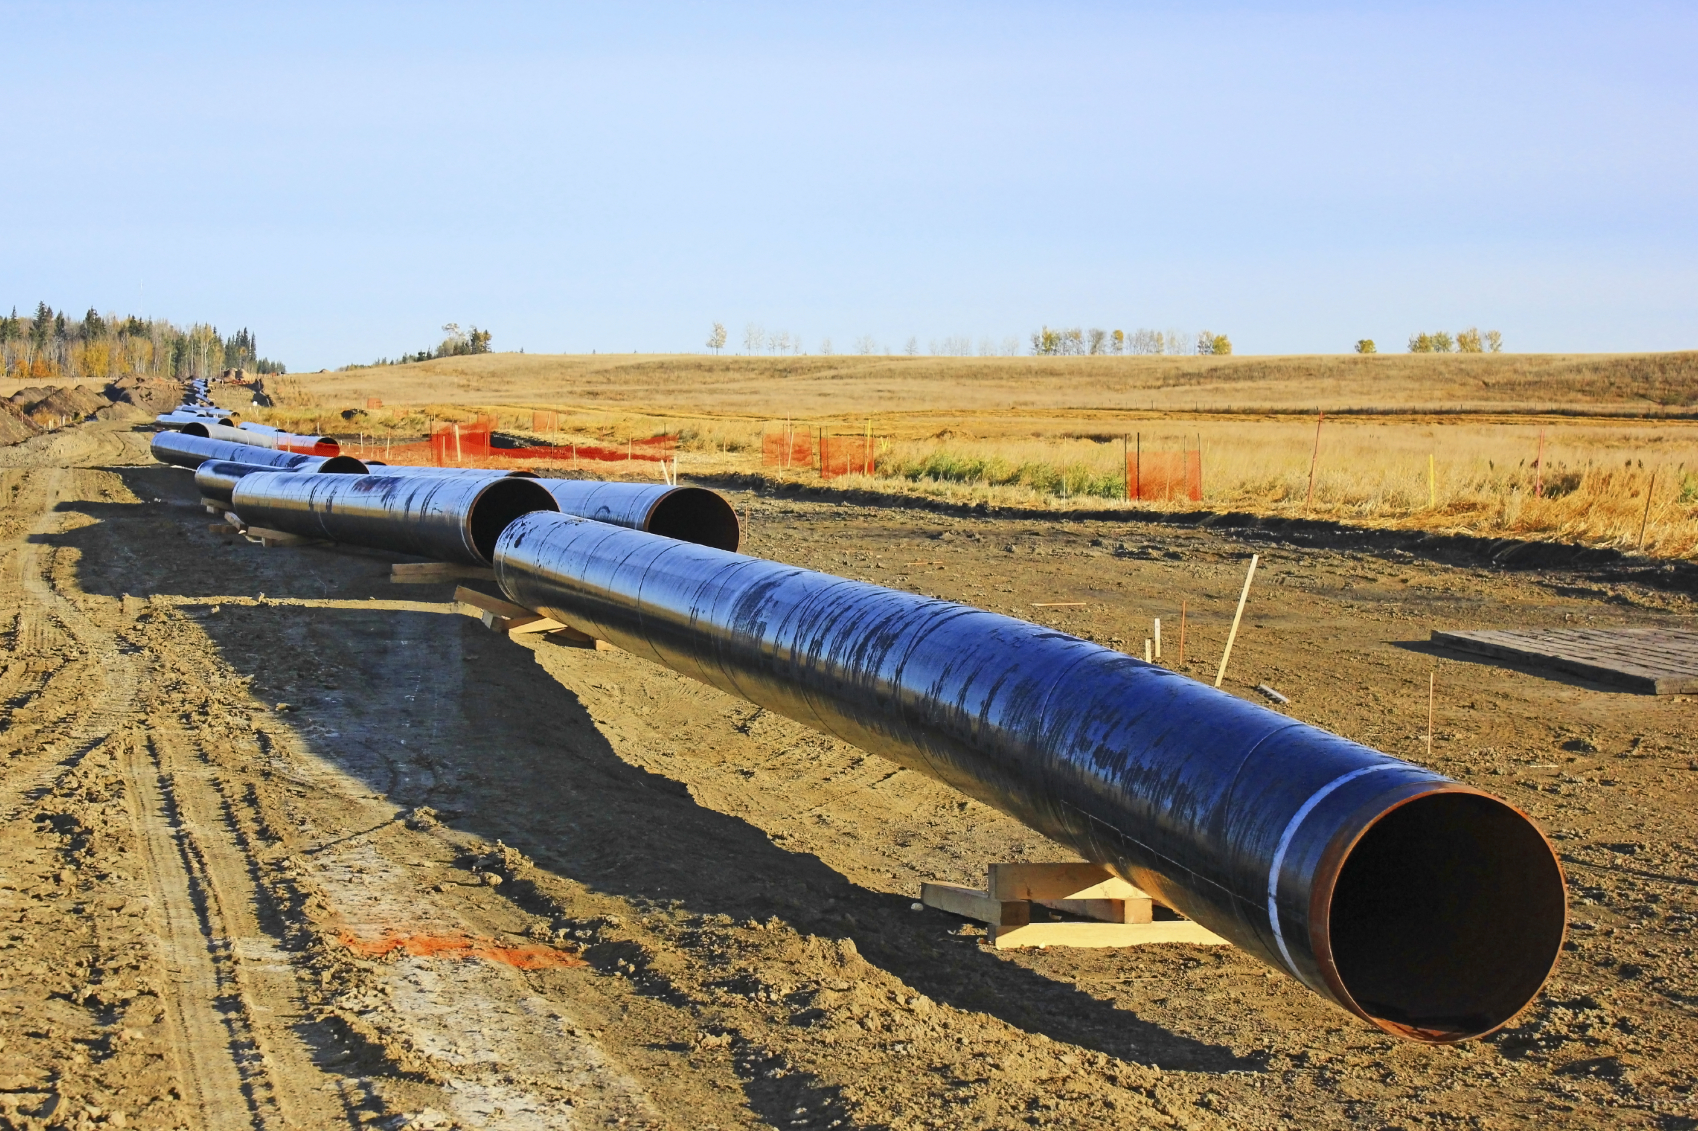 Natural Gas Pipeline Installation : Pipeline safety top concern for all segments of natural